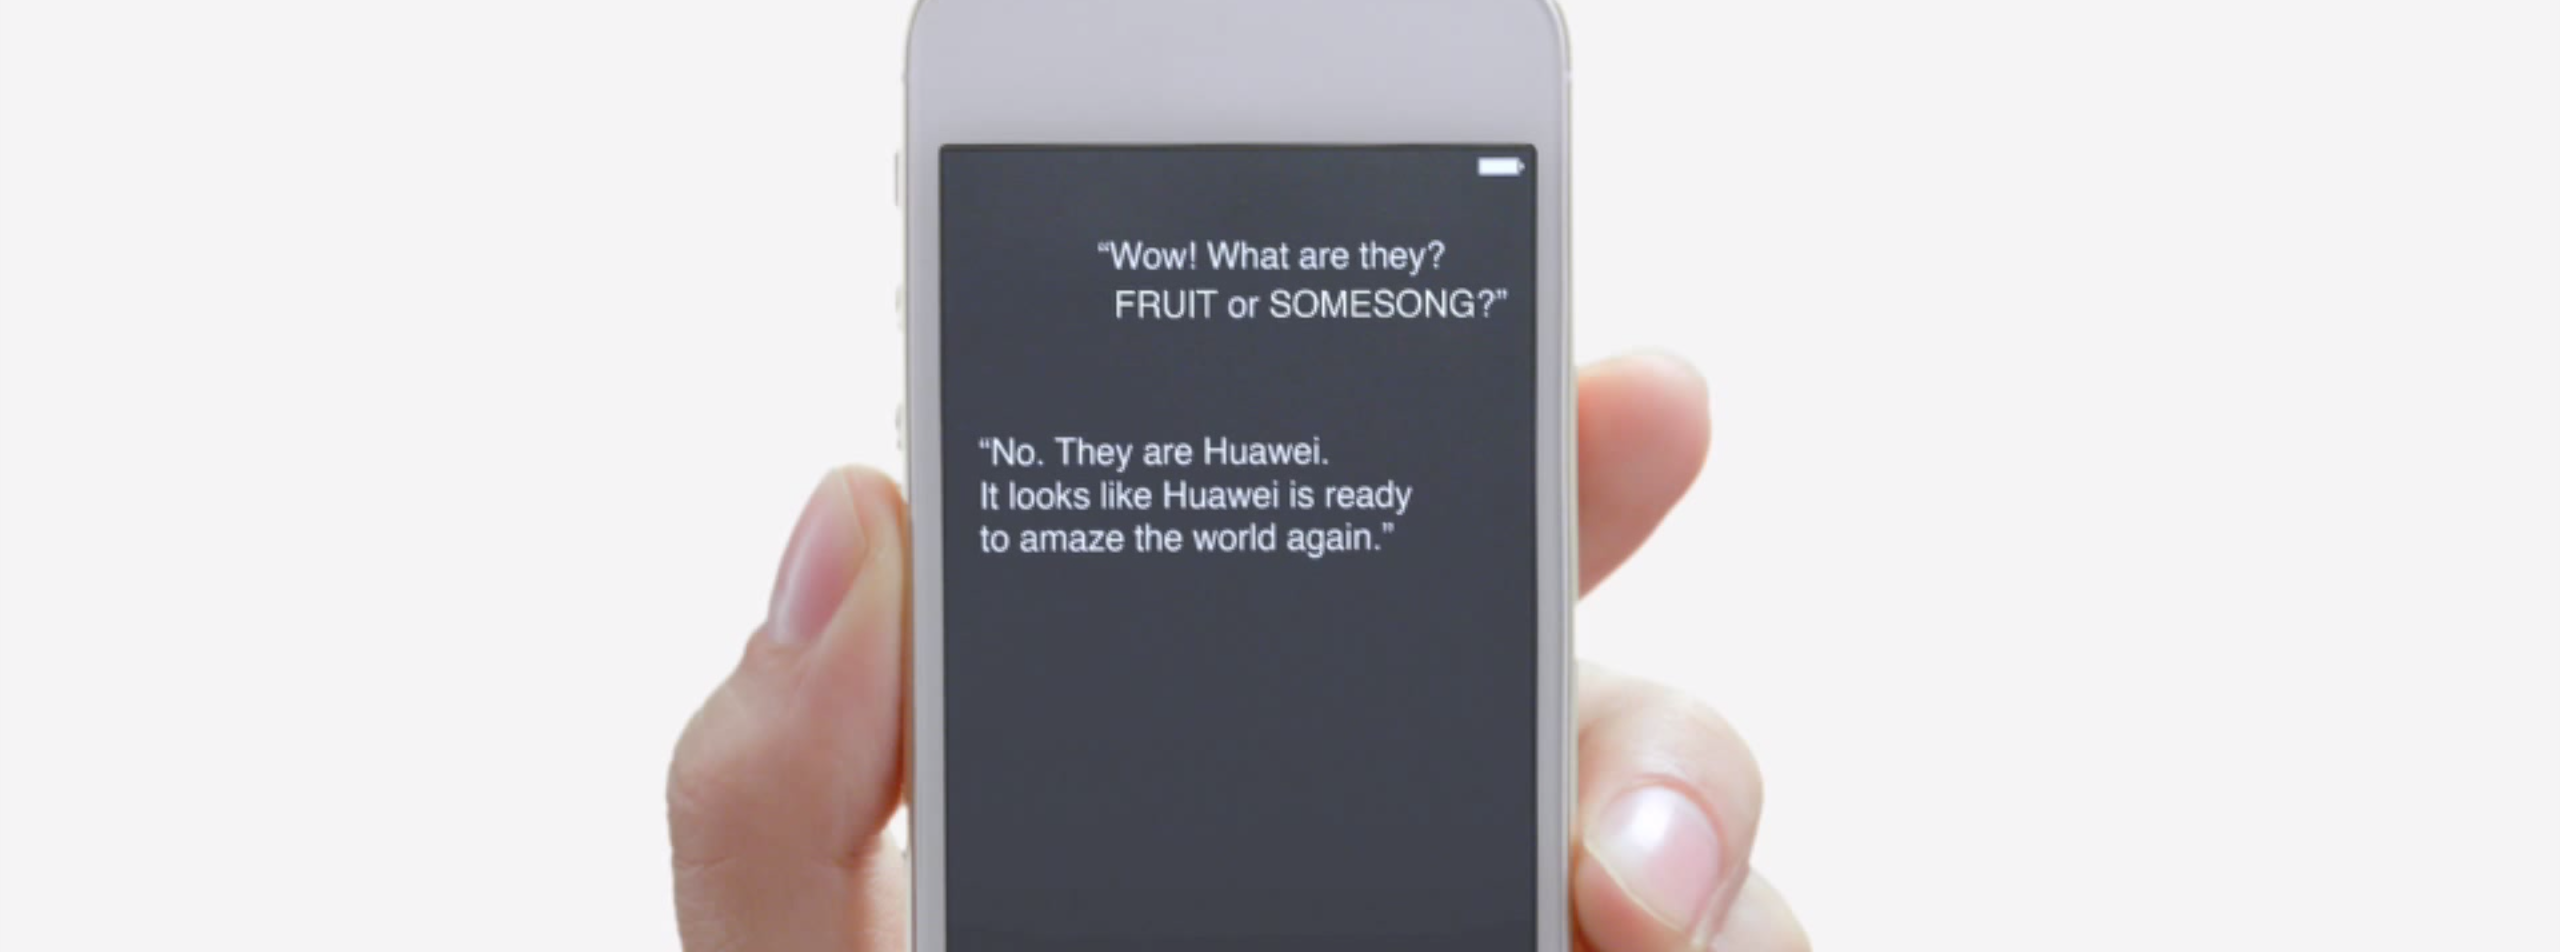 Huawei Video uses Siri and iPhone to Tease New Smartphone, Tablets